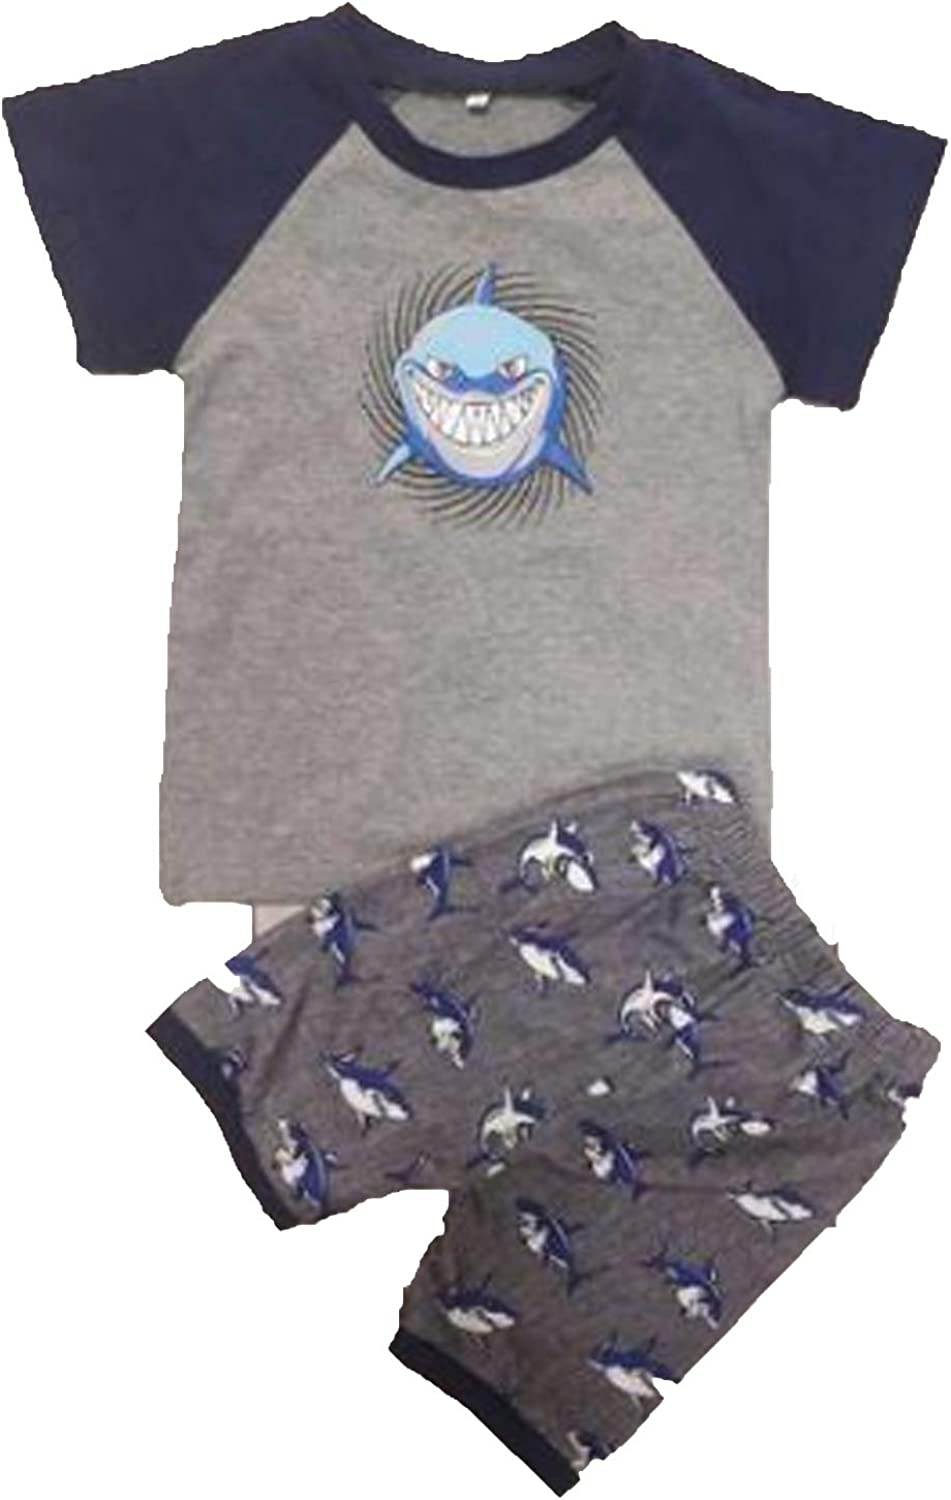 Shorts Infant Cool Outfit Set Newborn Baby Boy Summer Casual Clothes Set Short Sleeve Top